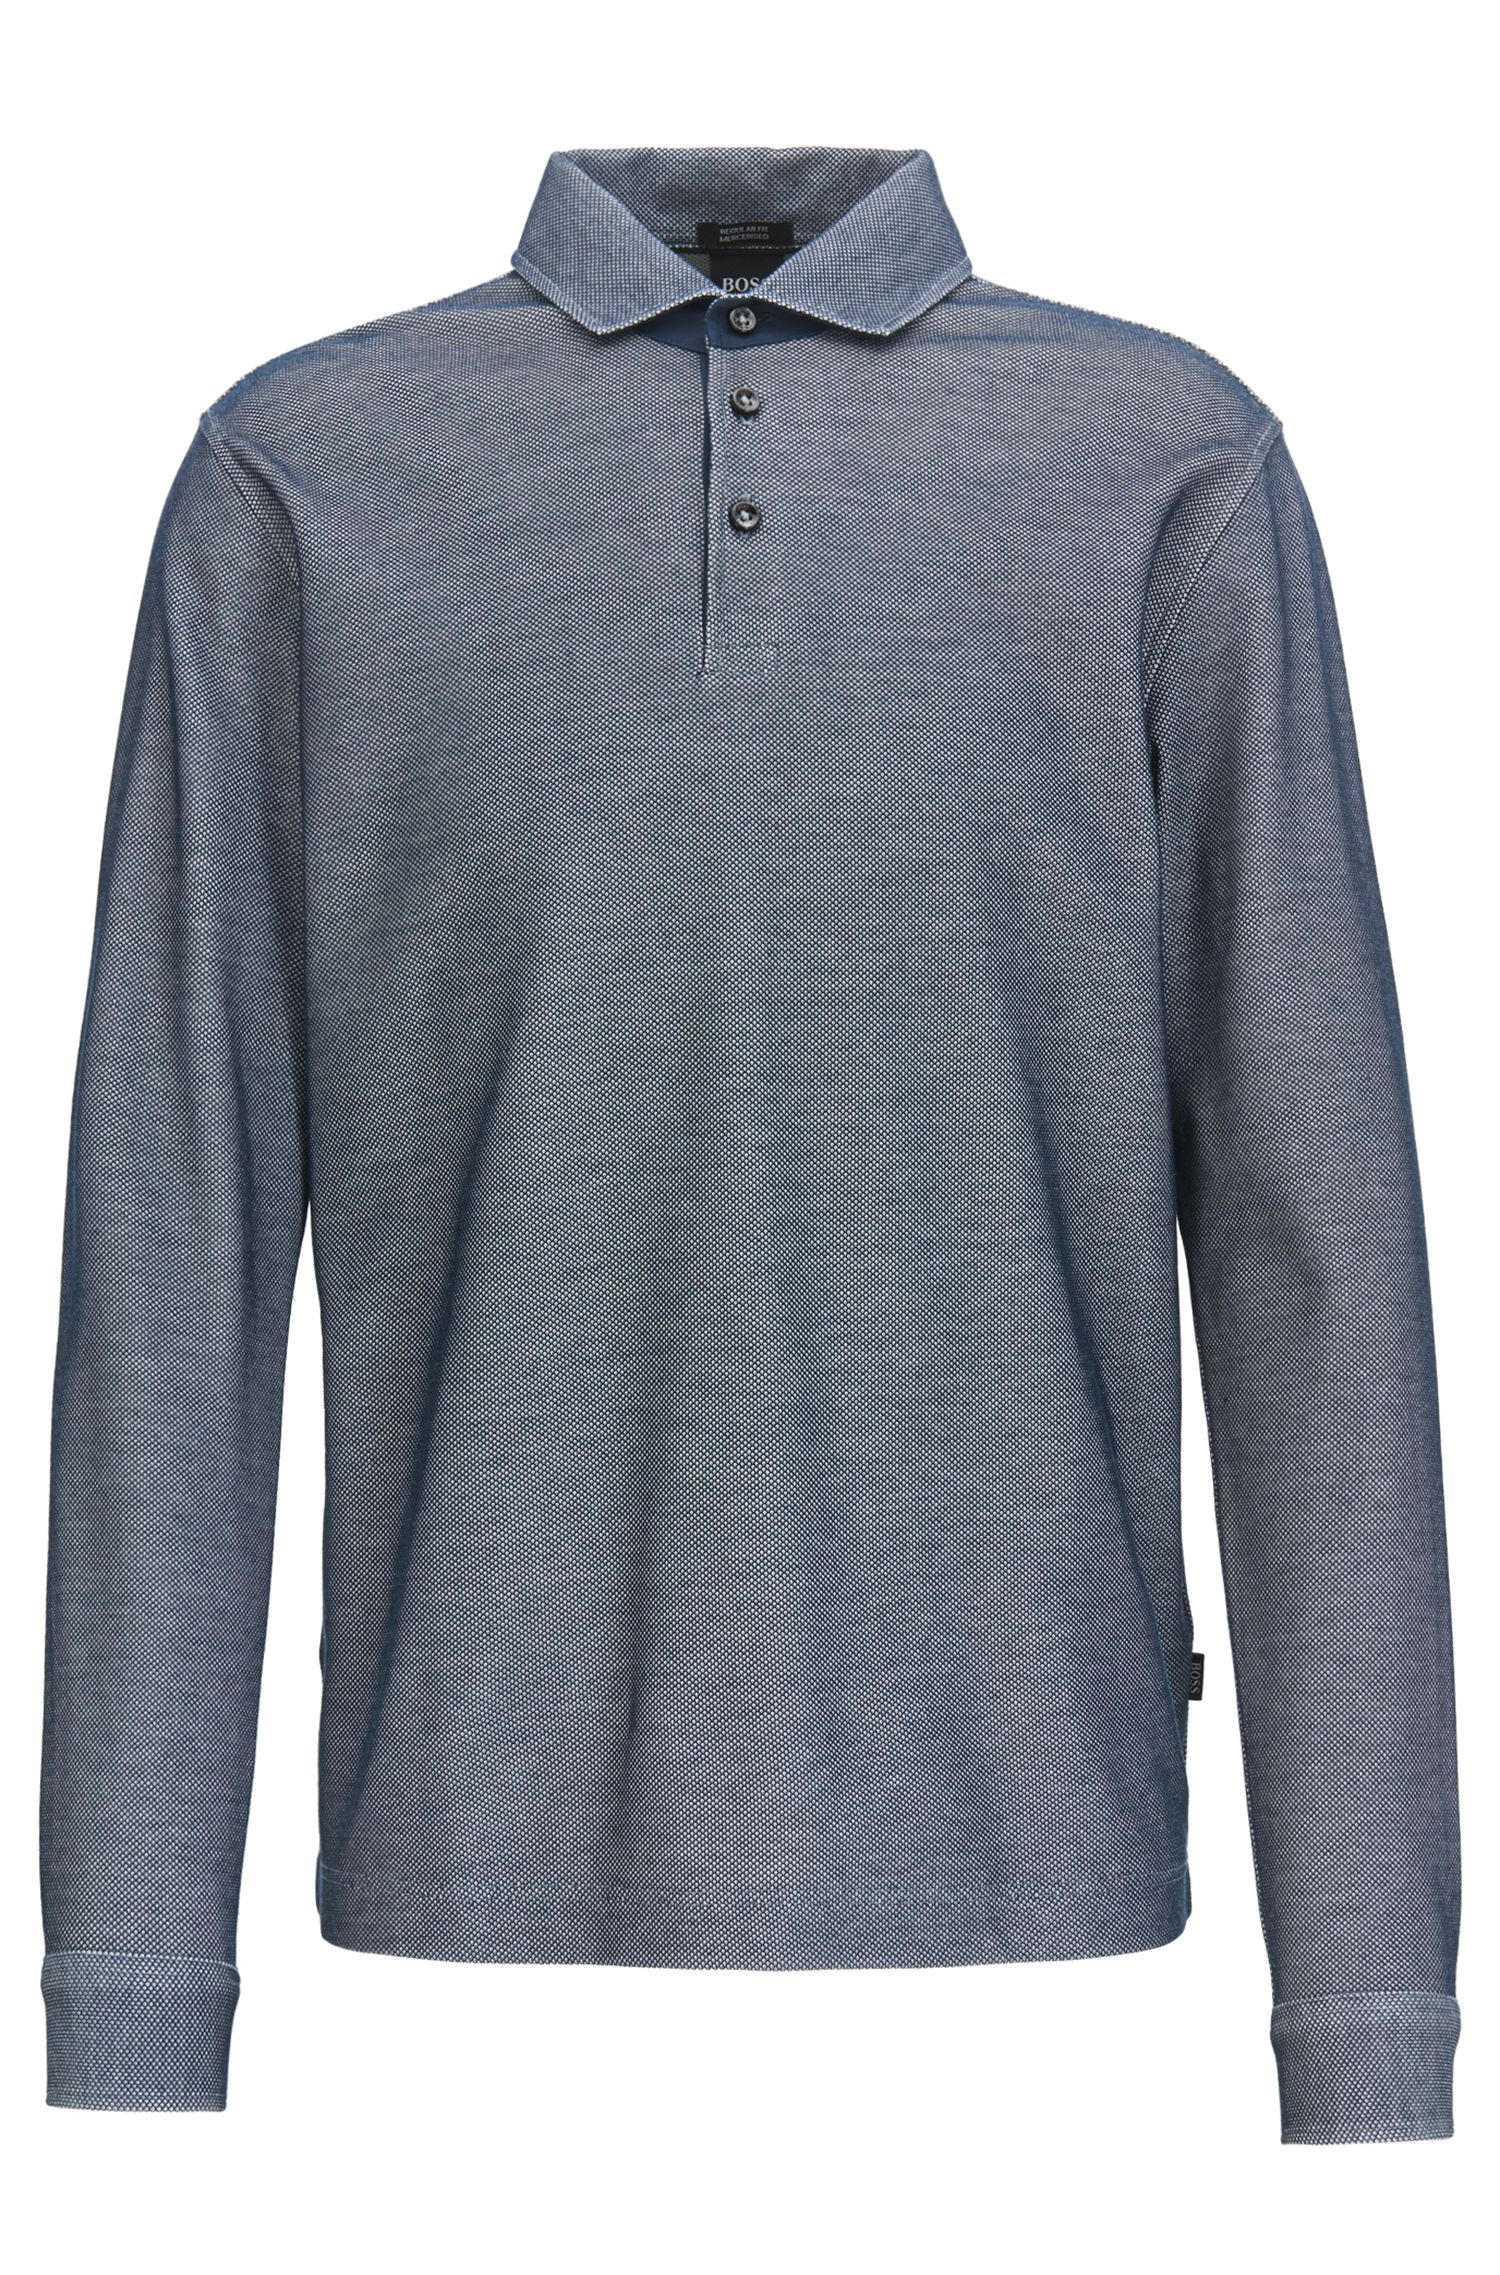 Polo shirt in two-tone mercerised cotton